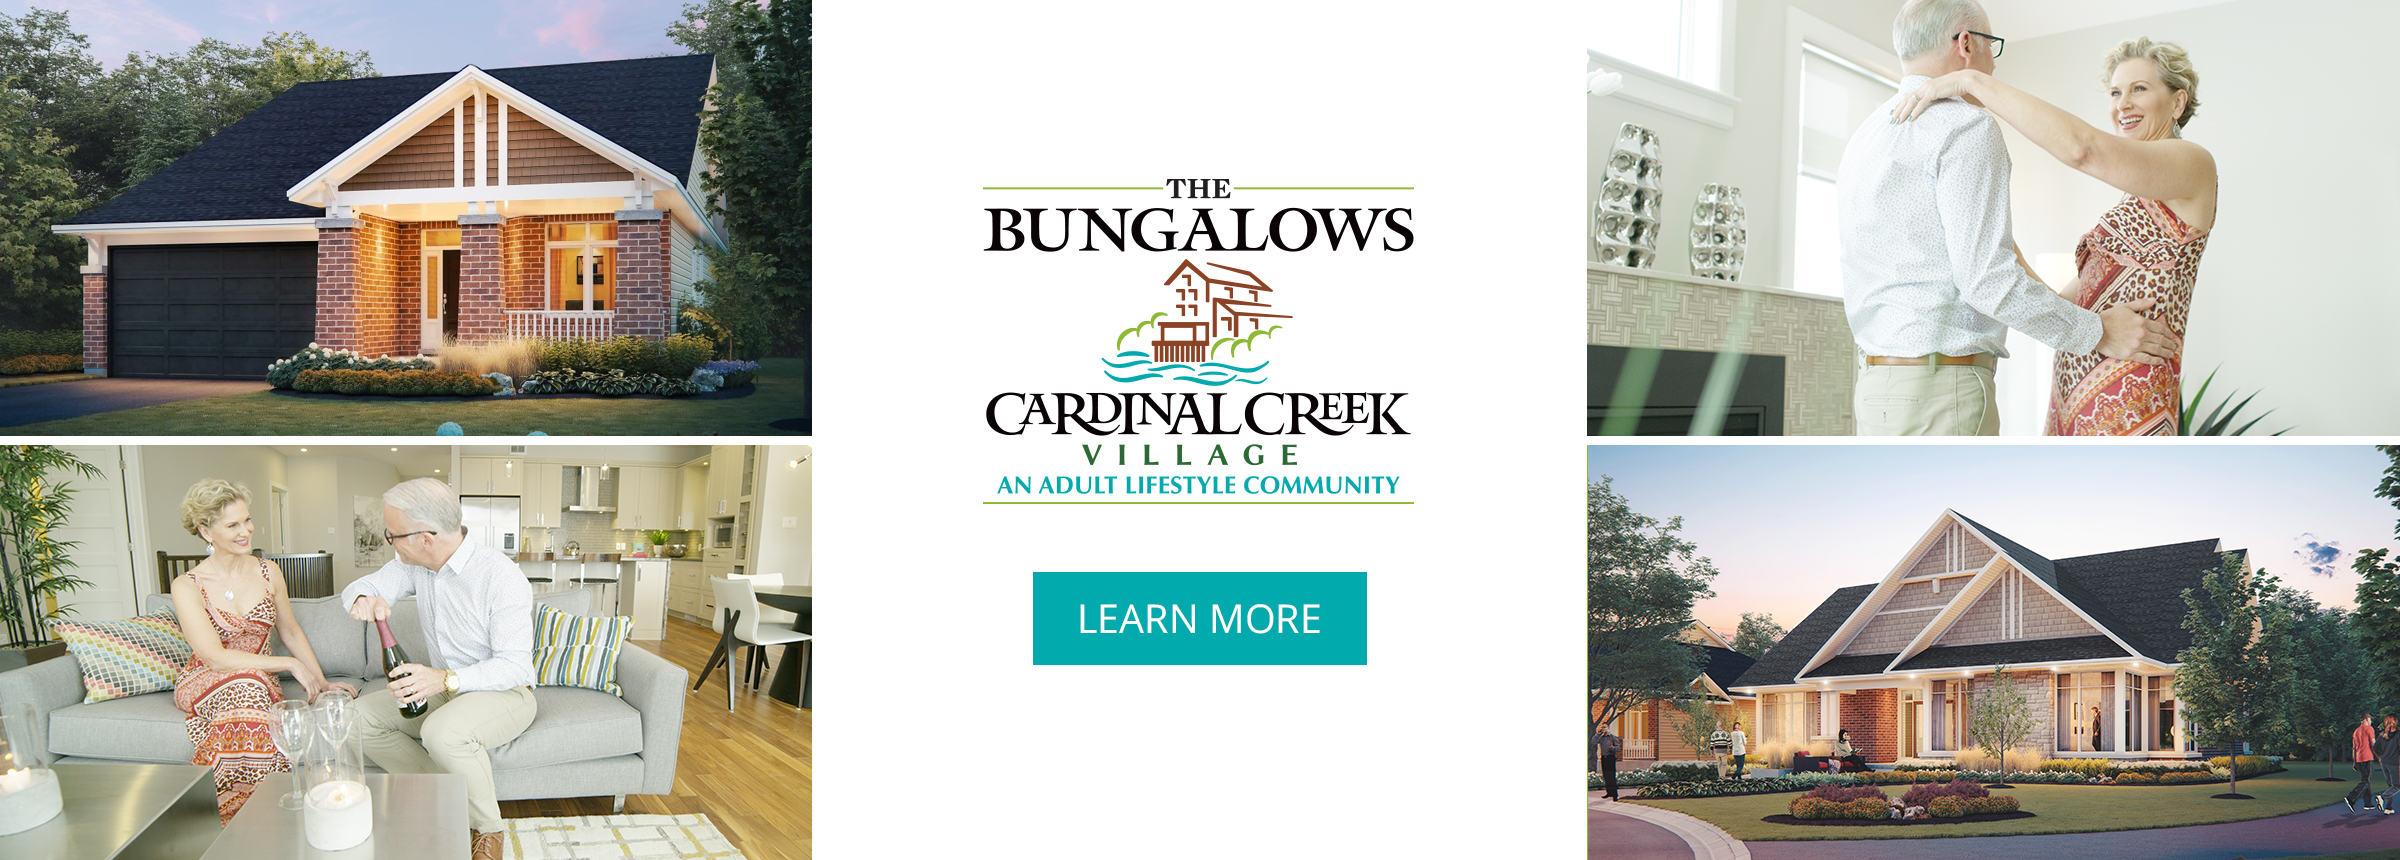 The Bungalows: Cardinal Creek Village - An Adult Lifestyle Community